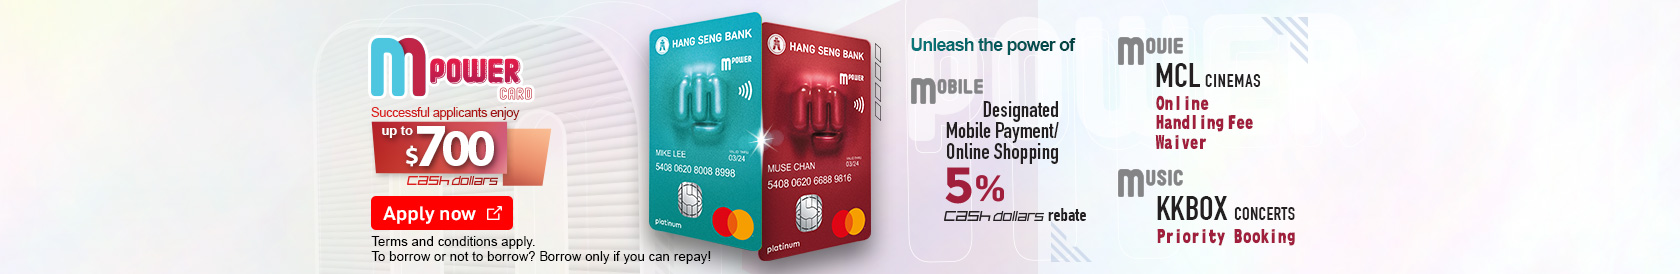 MPOWER Card, unleash the power of: MOBILE Mobile Payment, Online and Overseas transaction can enjoy 5% Cash Dollars rebate MOVIE MCL Cinemas Online Handling Fee Waiver MUSIC KKBOX Concerts Priority Booking. Successful applicants enjoy Up to $700 Cash Dollars . Terms and conditions apply.